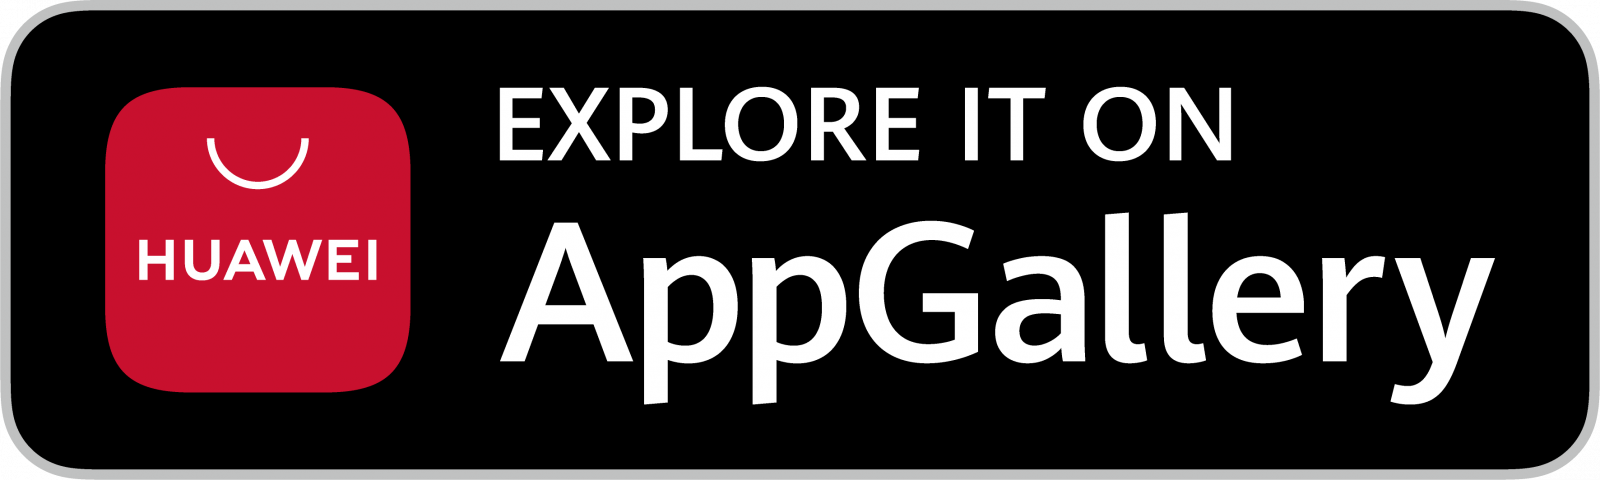 Download on AppGallery